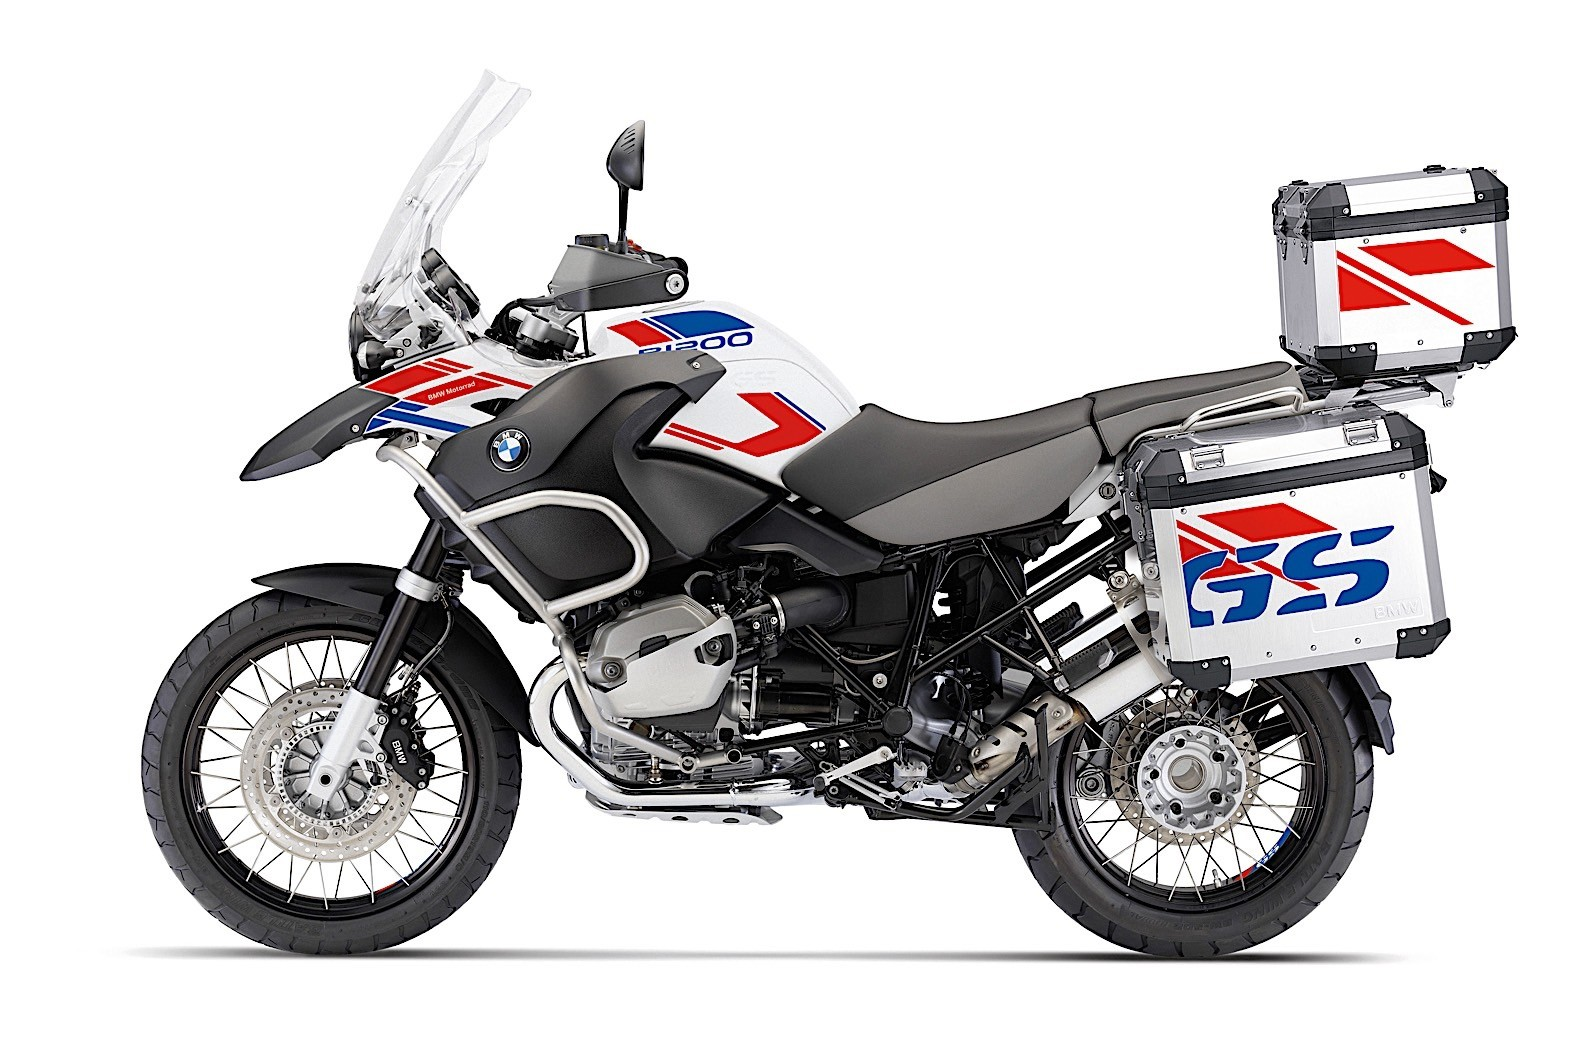 tattoo-your-bike-with-one-of-these-bmw-motorrad-stickers-6